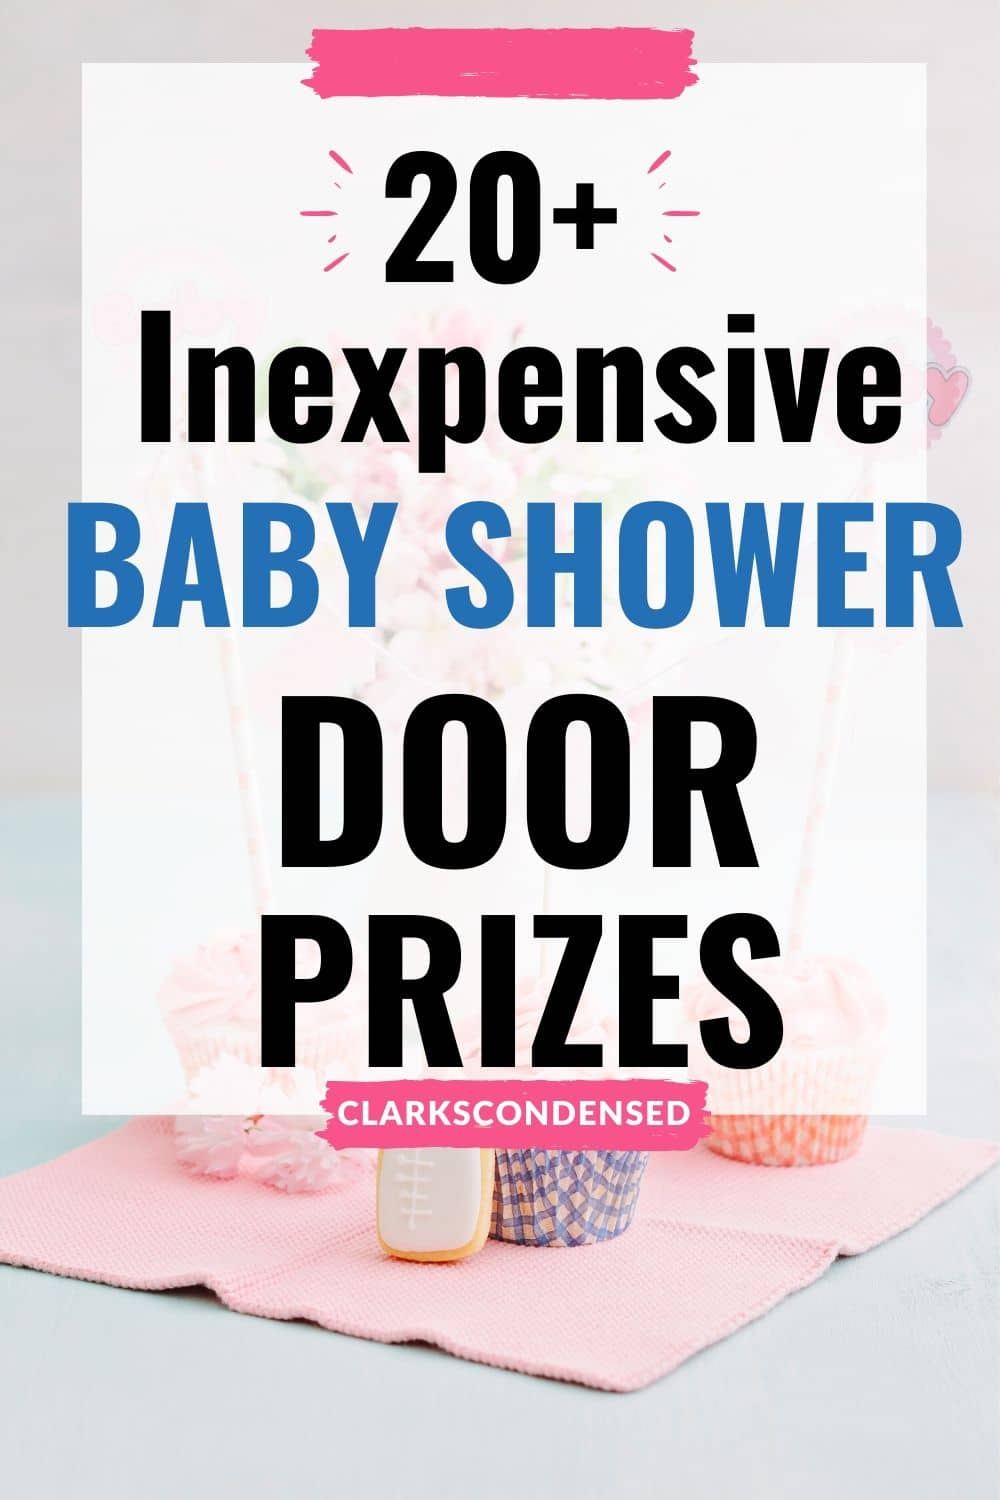 Baby shower prizes can add a little bit of extra competition and fun to a baby shower. Here is a list of the best prizes for baby shower games - there's something for every budget! #babyshower #baby #babysprinkle #diapershower via @clarkscondensed